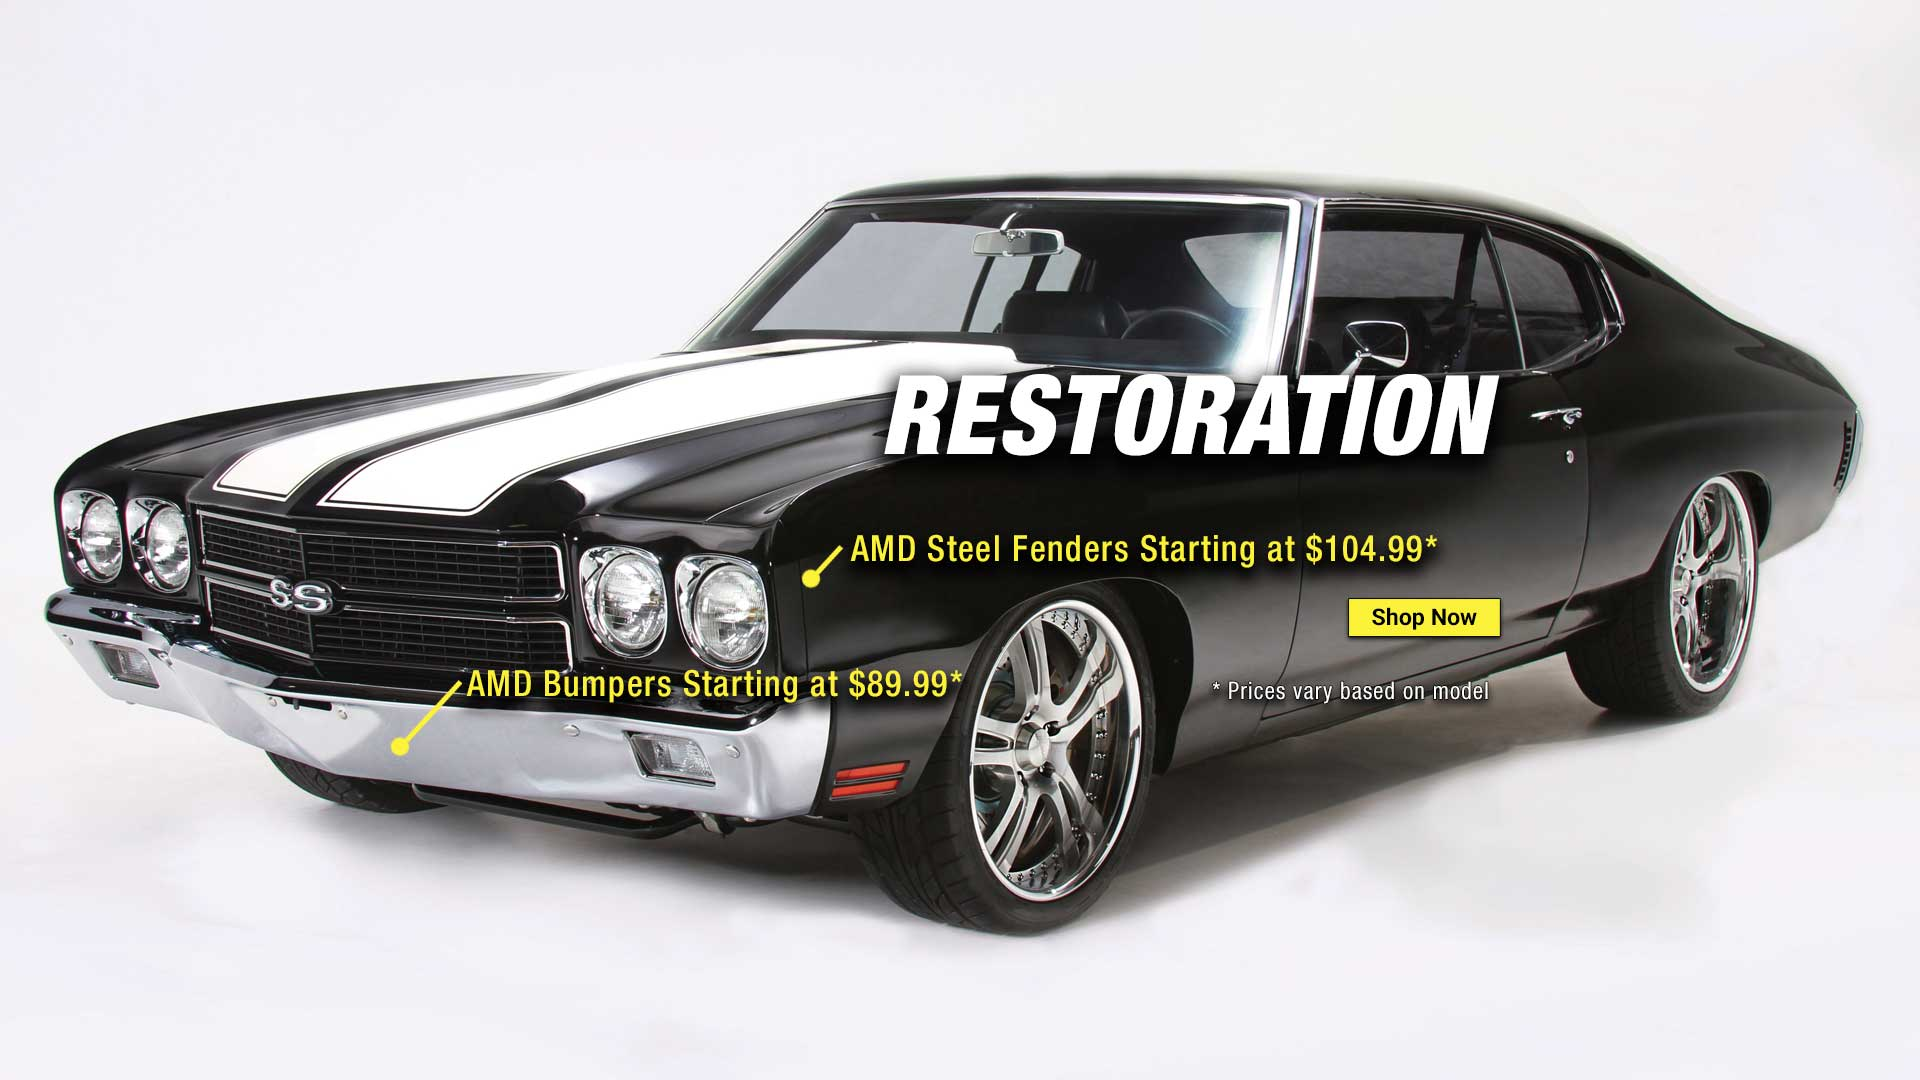 Restoration Your Source for Classic Car Products